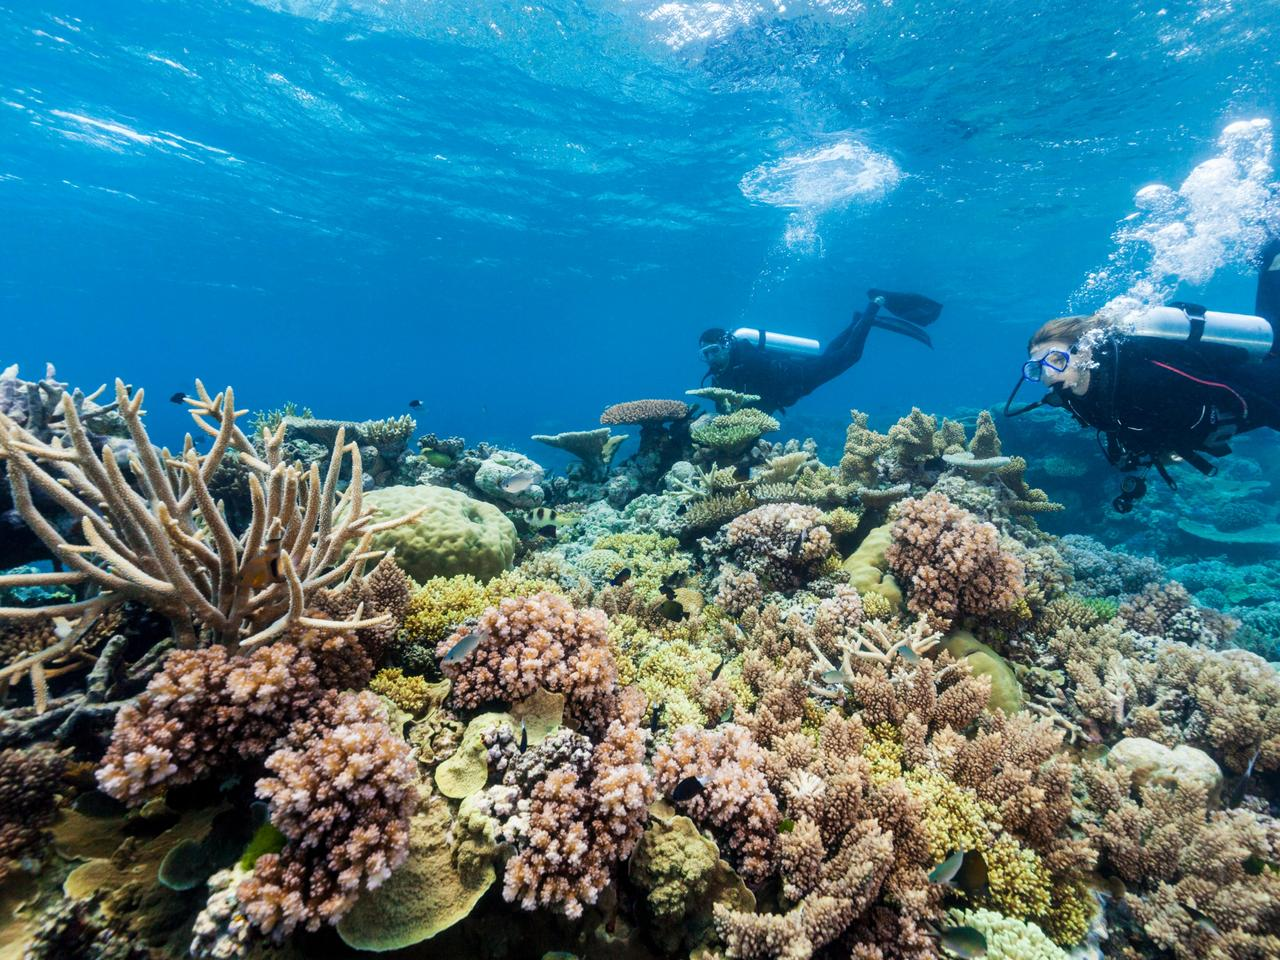 Divers exploring the coral formations of Agincourt Reef, Great Barrier Reef Marine Park, Port Douglas, Queensland, Australia